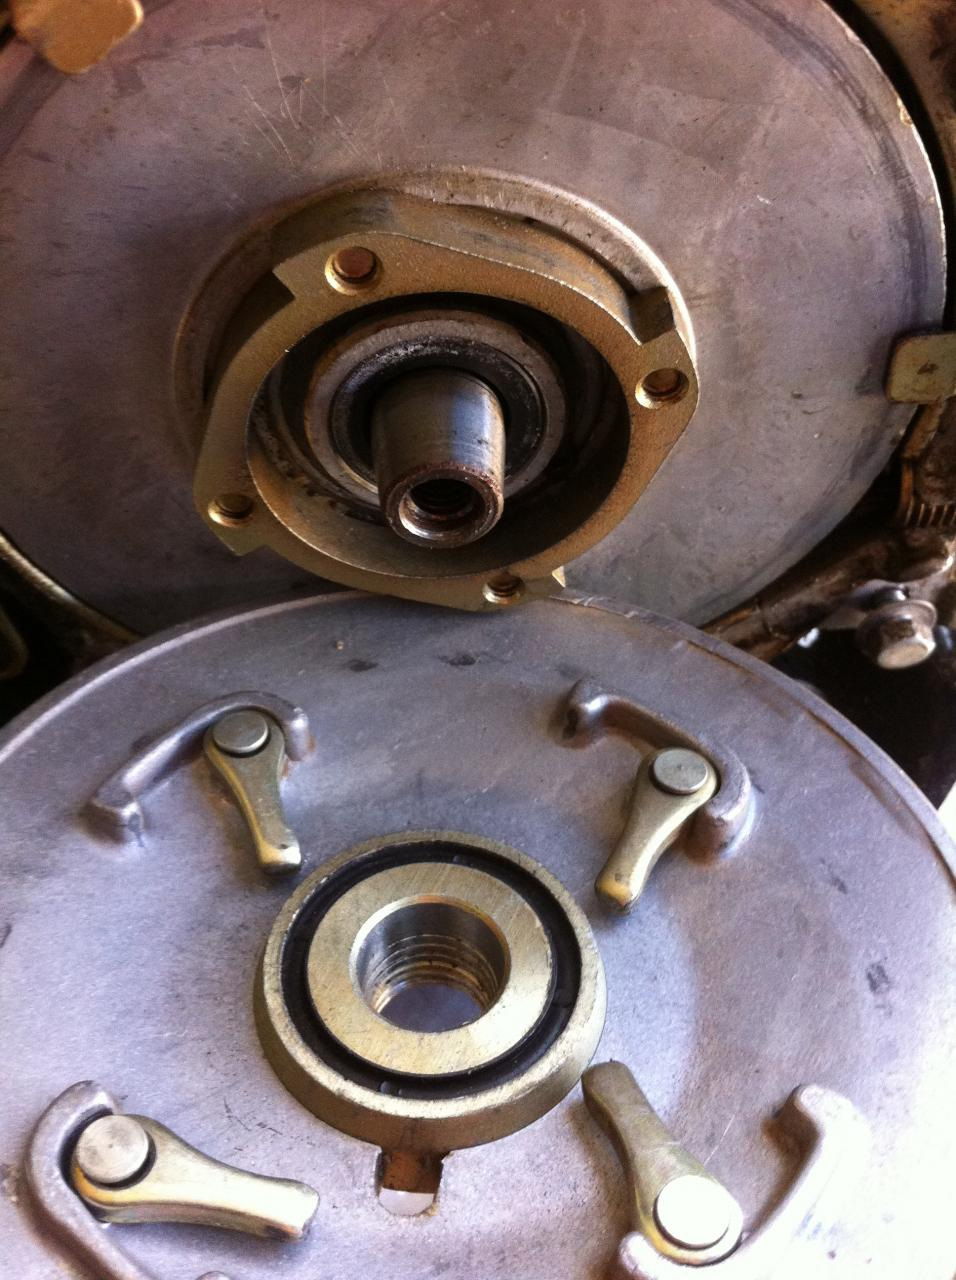 Honda E300 Generator Flywheel Removal Outdoorking Repair Forum Wiring Diagram As Norm And Gadge Stated Correctly Screwing In A 14mm Bolt Enabled The Fan To Pull Off Crankshaft